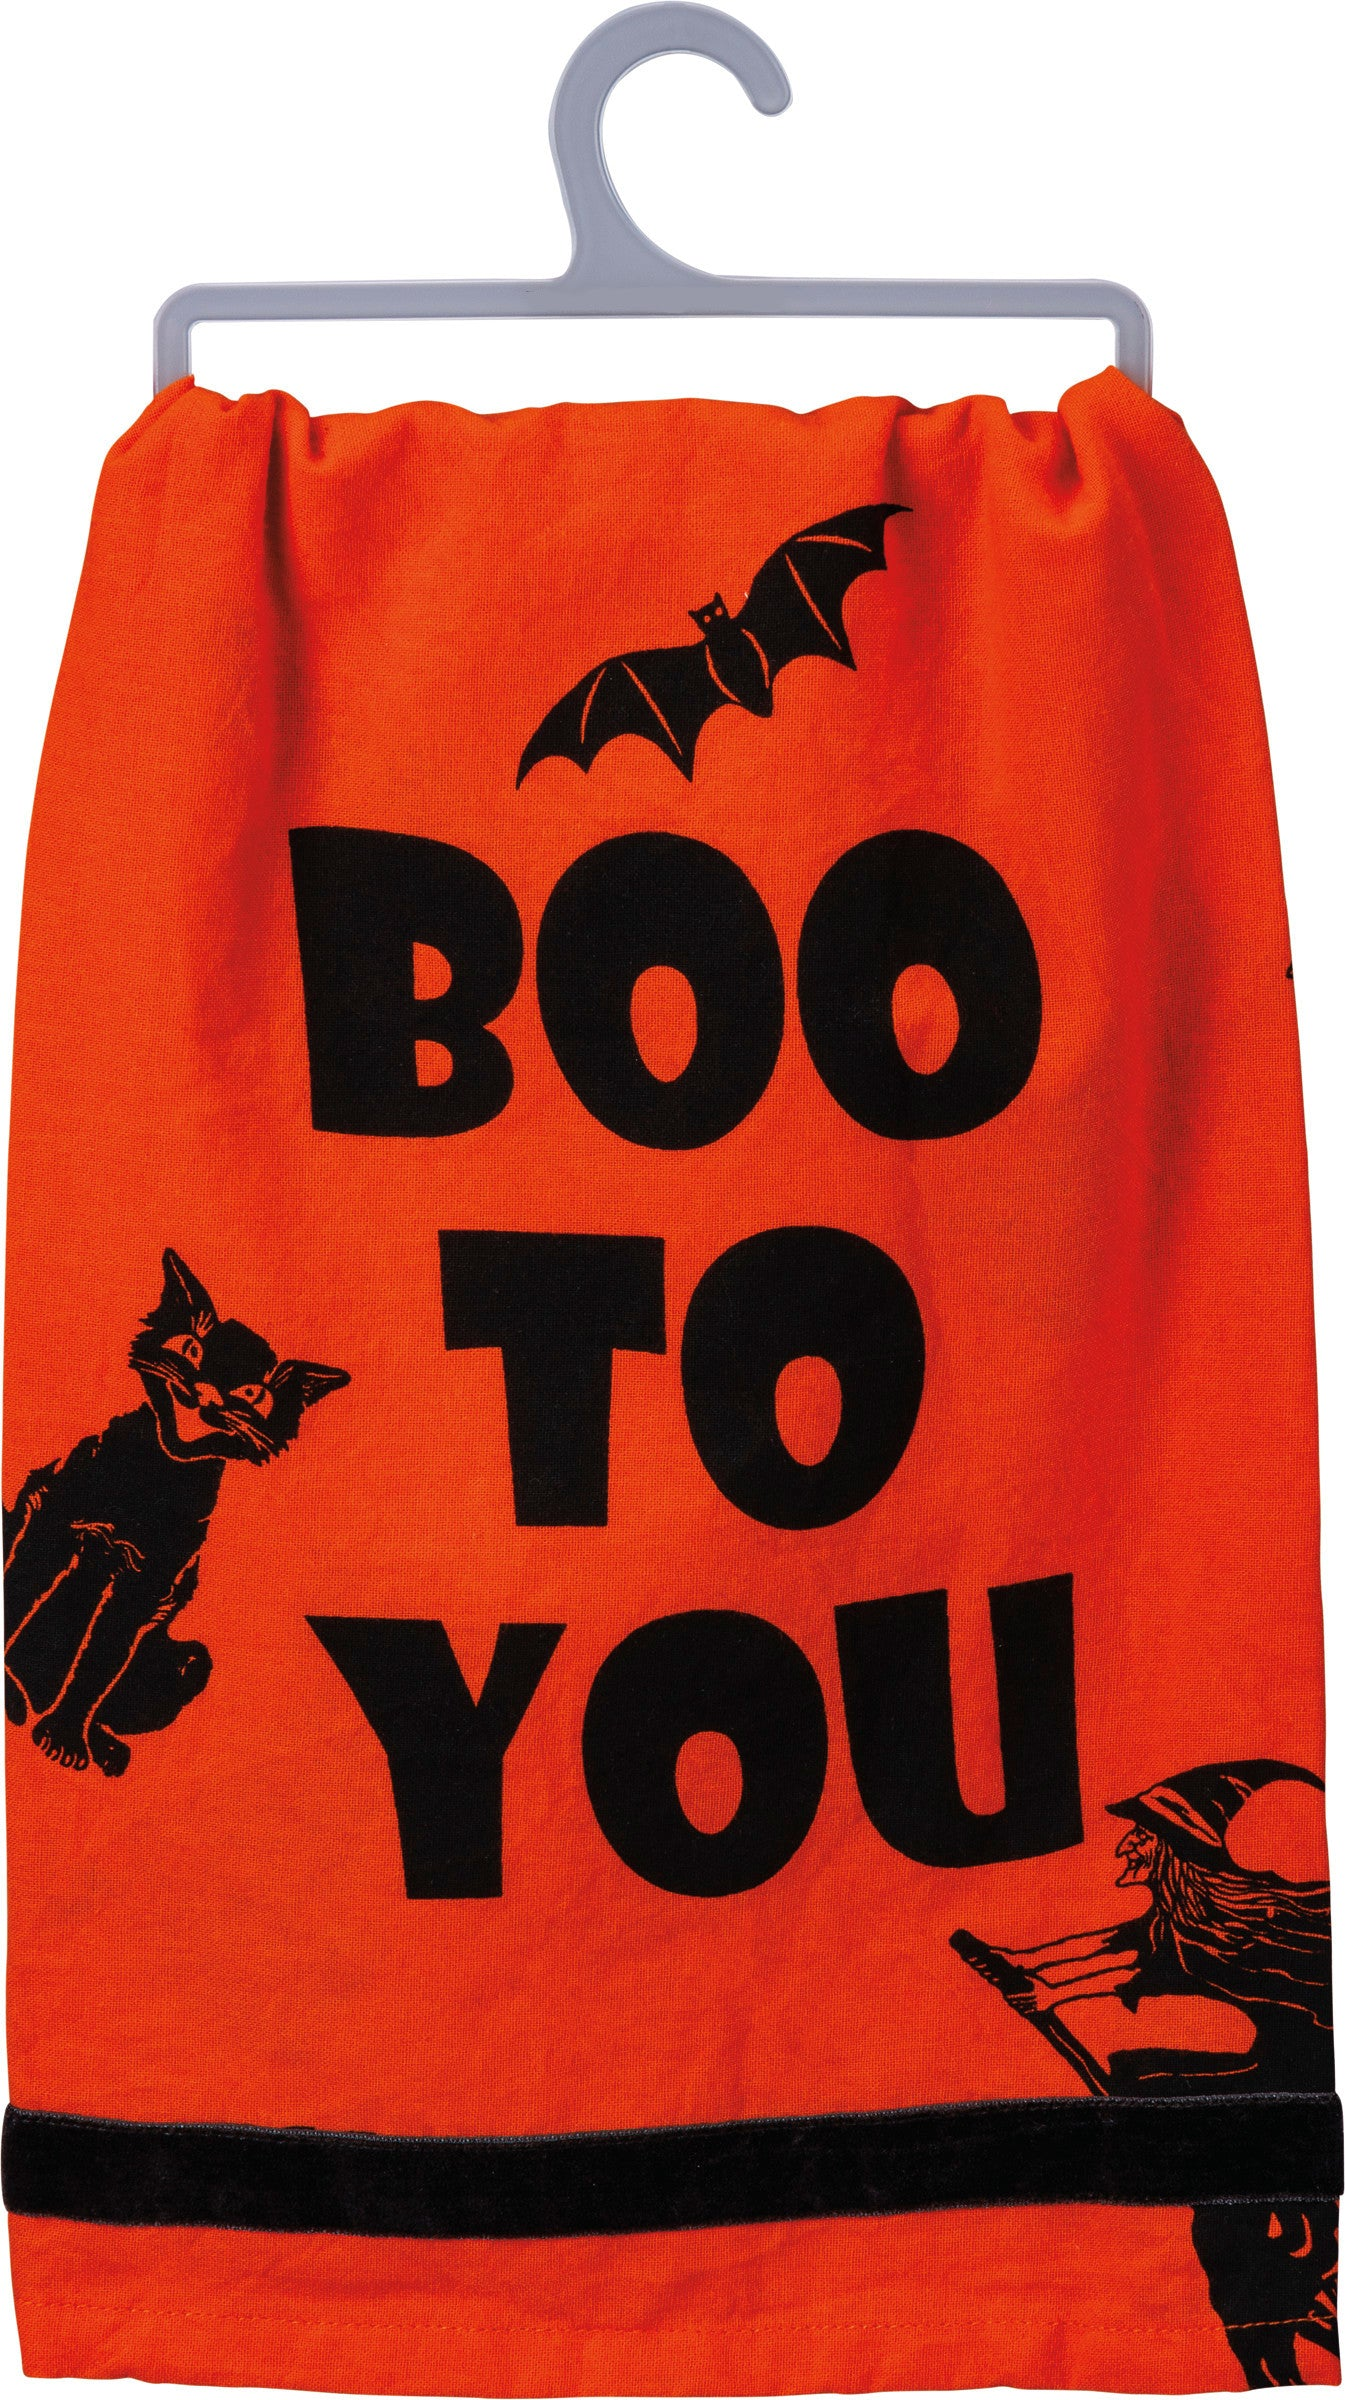 Boo to You Halloween Silhouettes Kitchen Towel